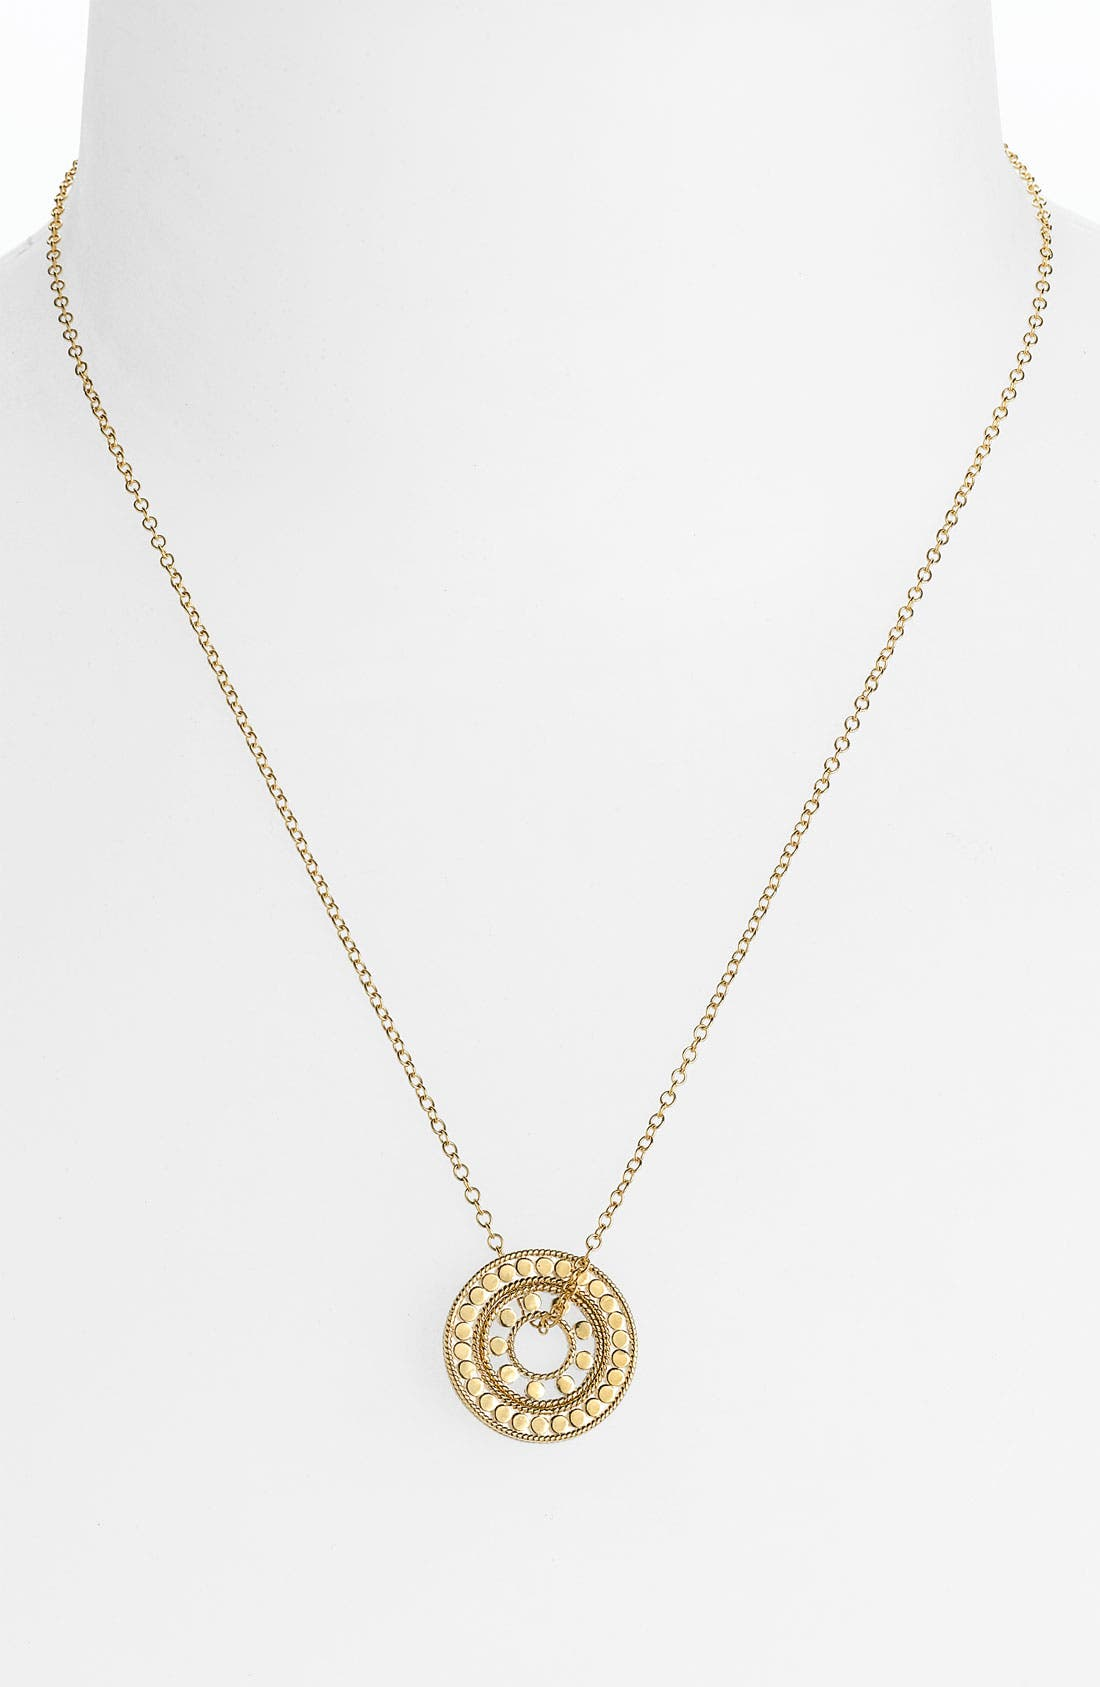 Alternate Image 1 Selected - Anna Beck 'Lombok' Double Circle Pendant Necklace